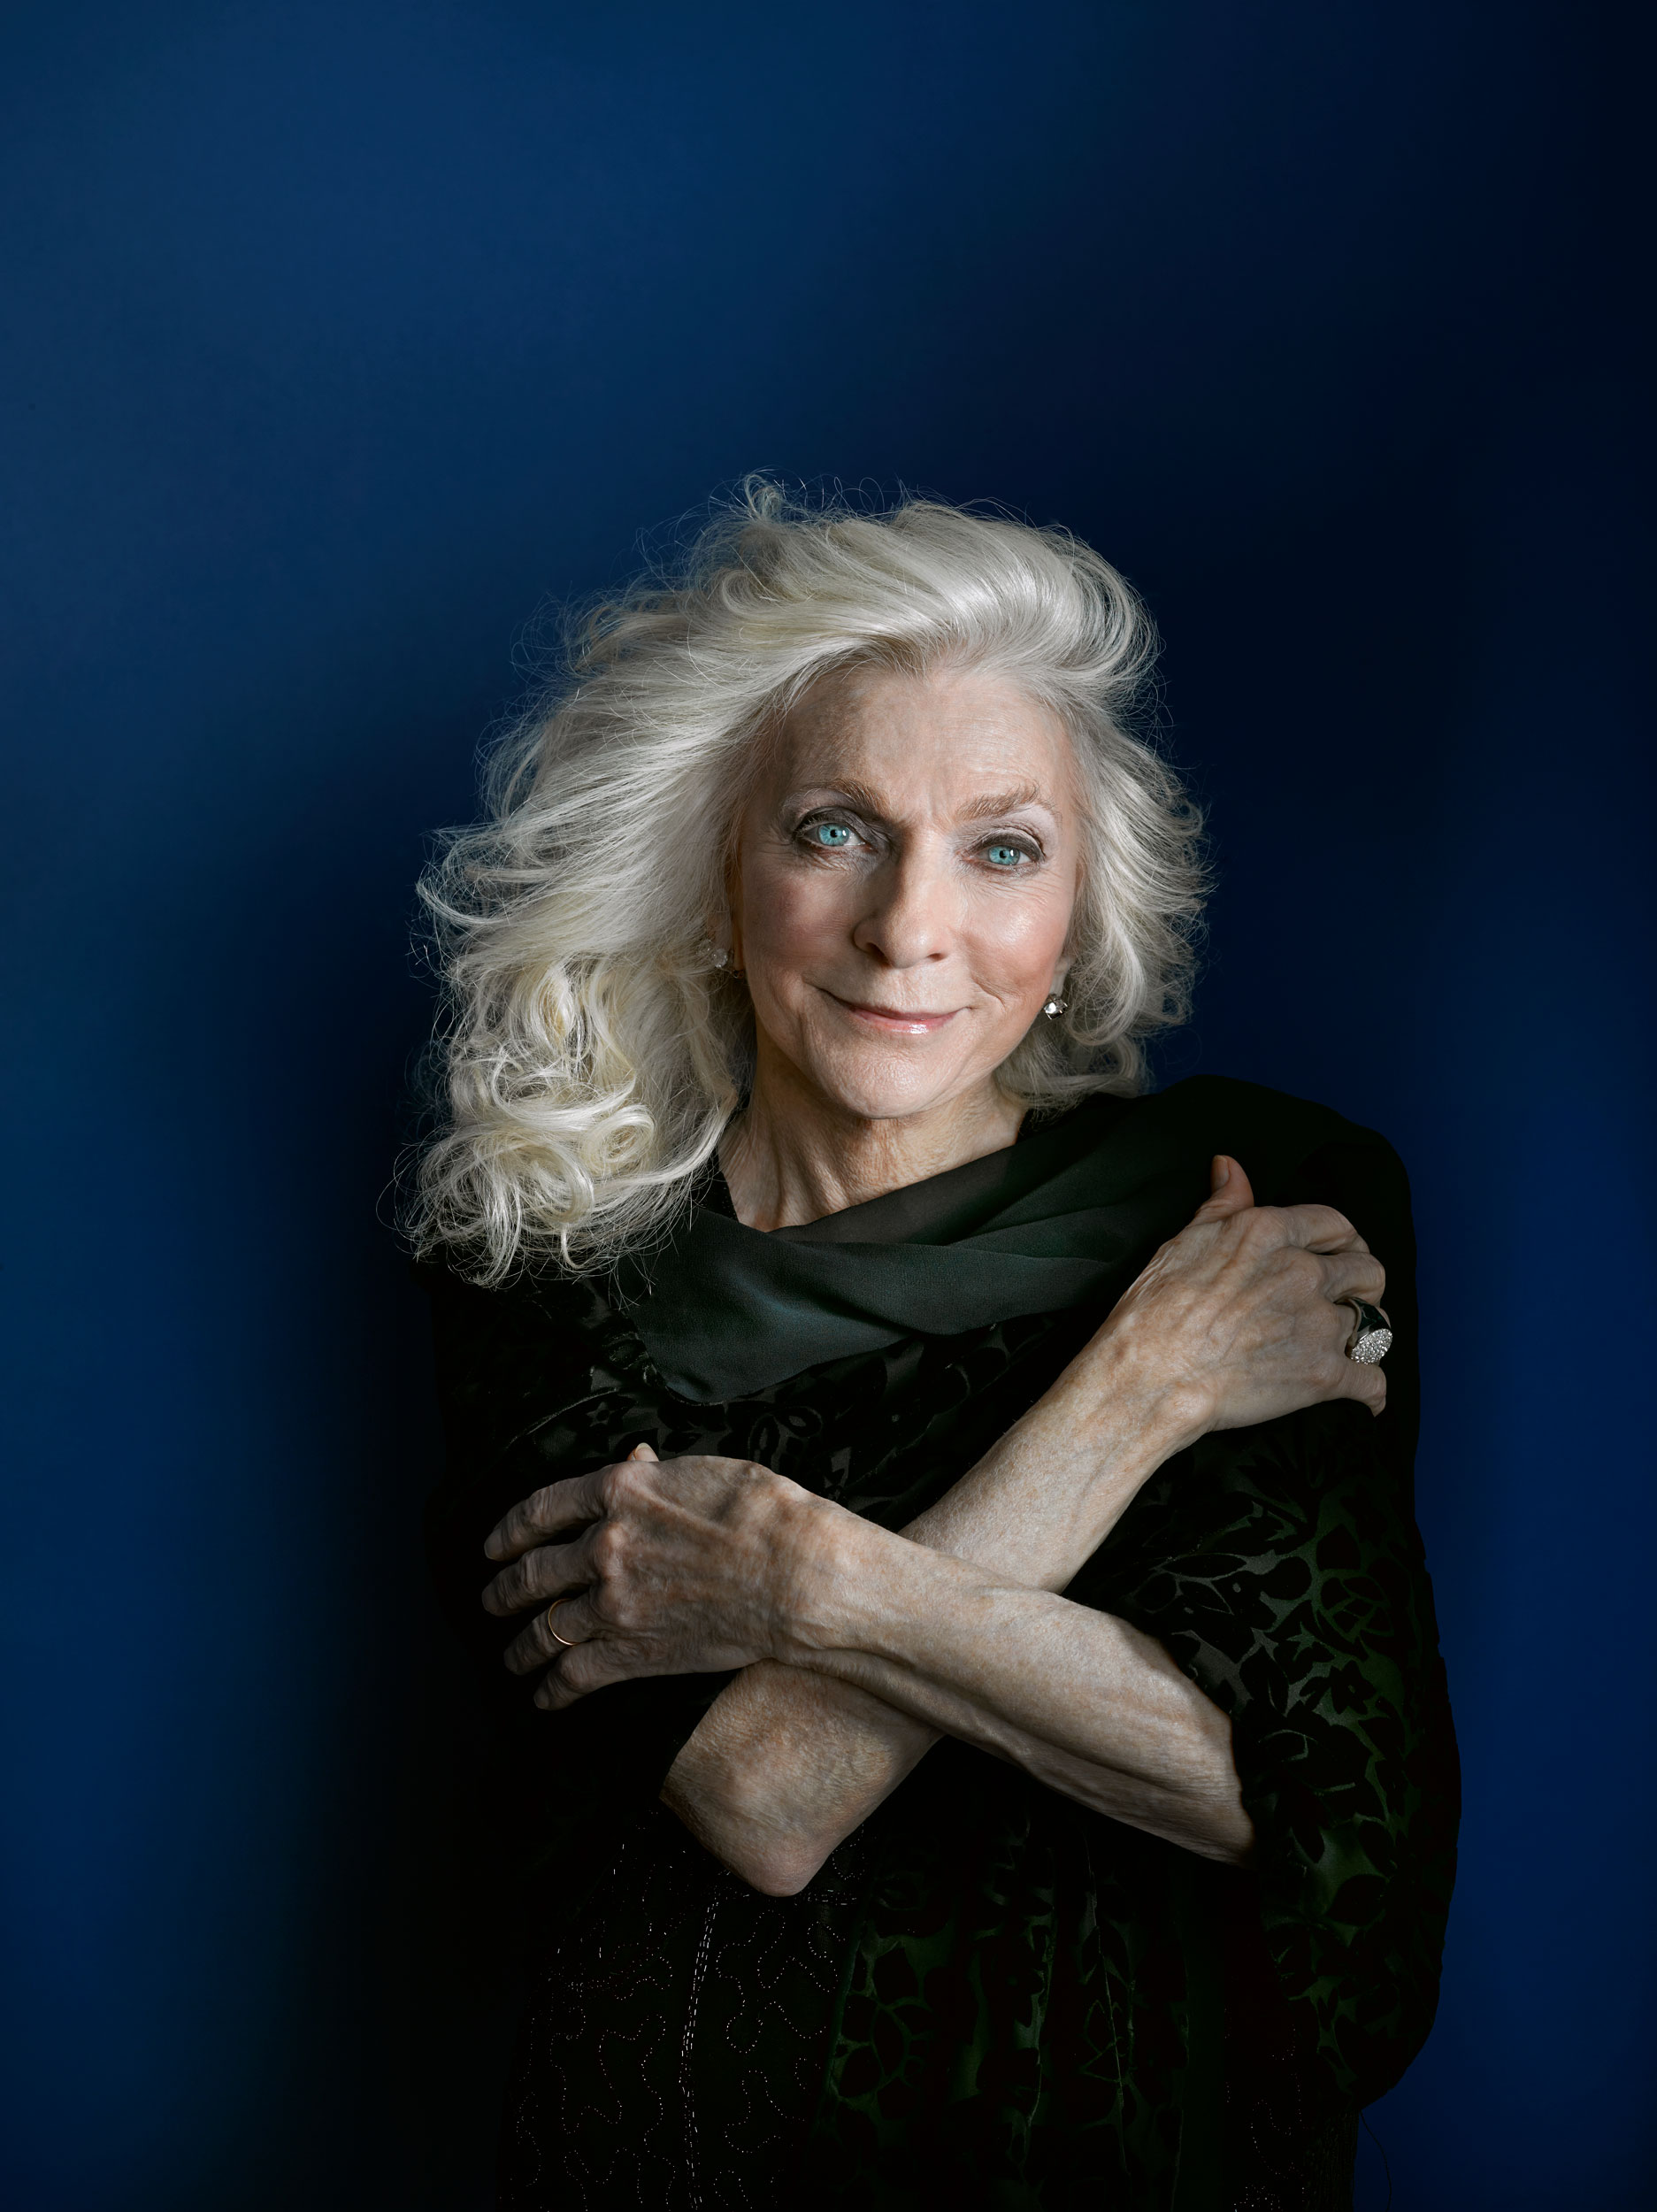 -images-uploads-gallery-judy_collins_Trent_A.jpg